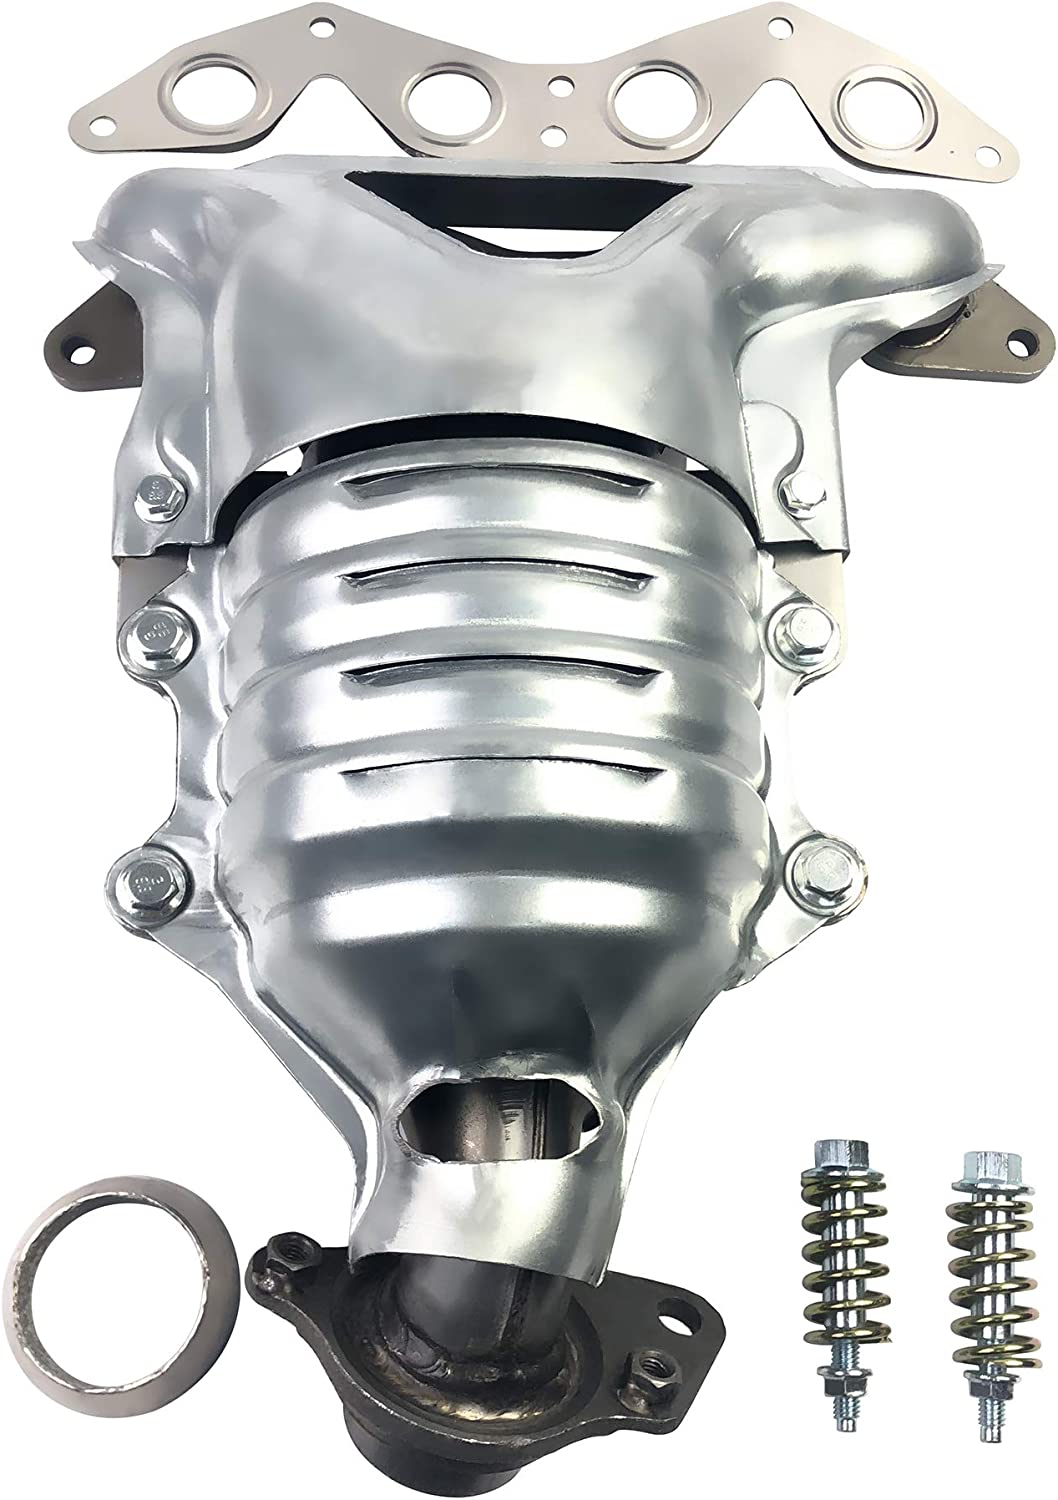 Exerock 674-608 Manifold with Catalytic Converter Com Integrated In a popularity Max 55% OFF